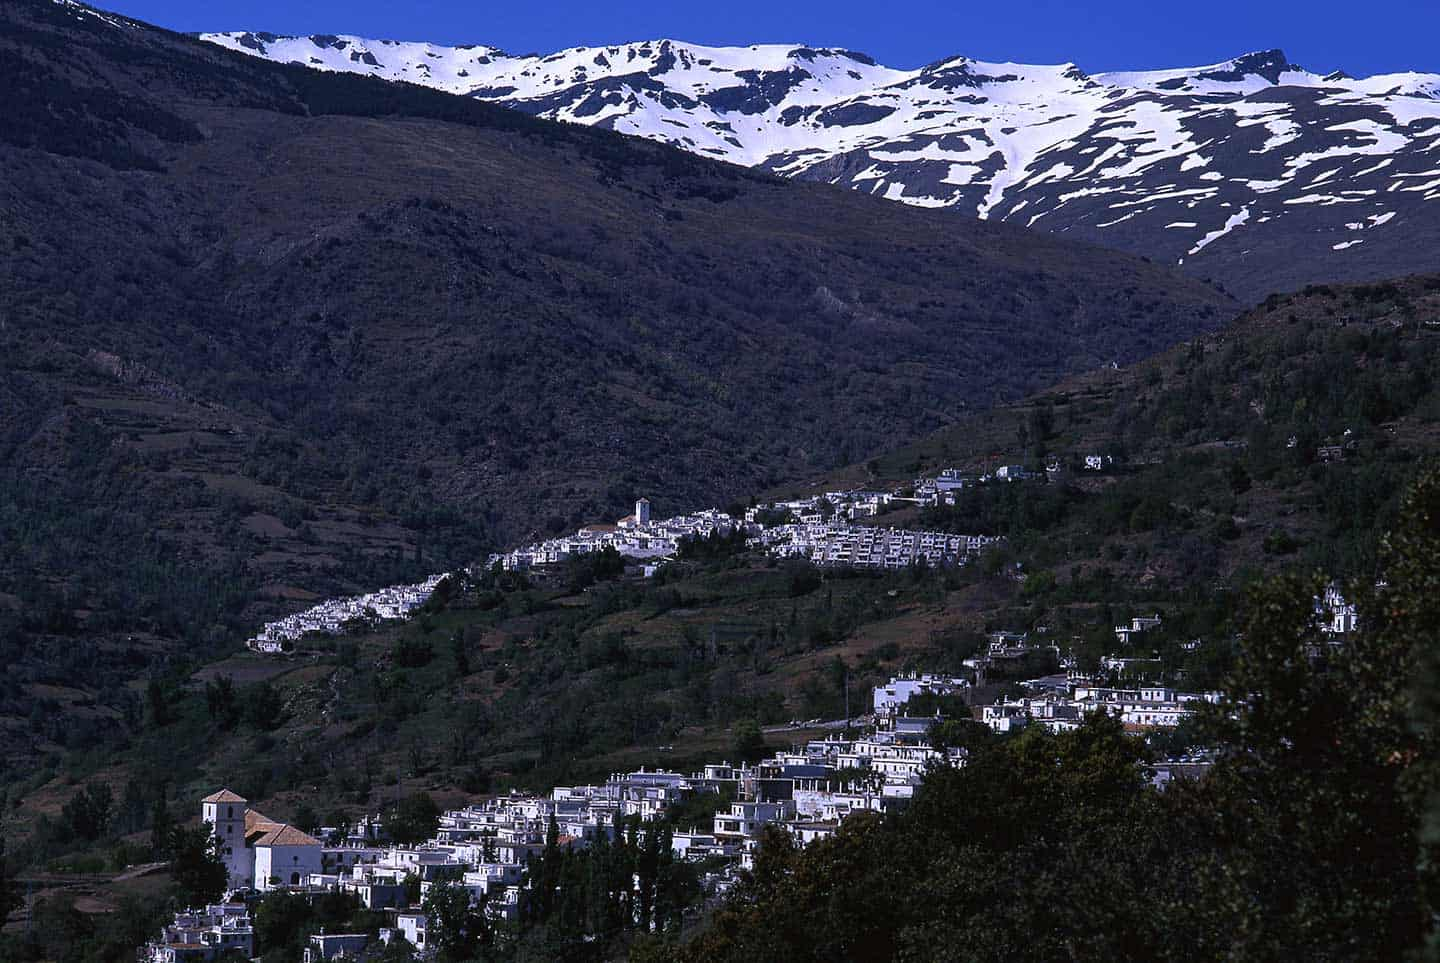 Image of villages in the Alpujarras in Andalucia, Spain